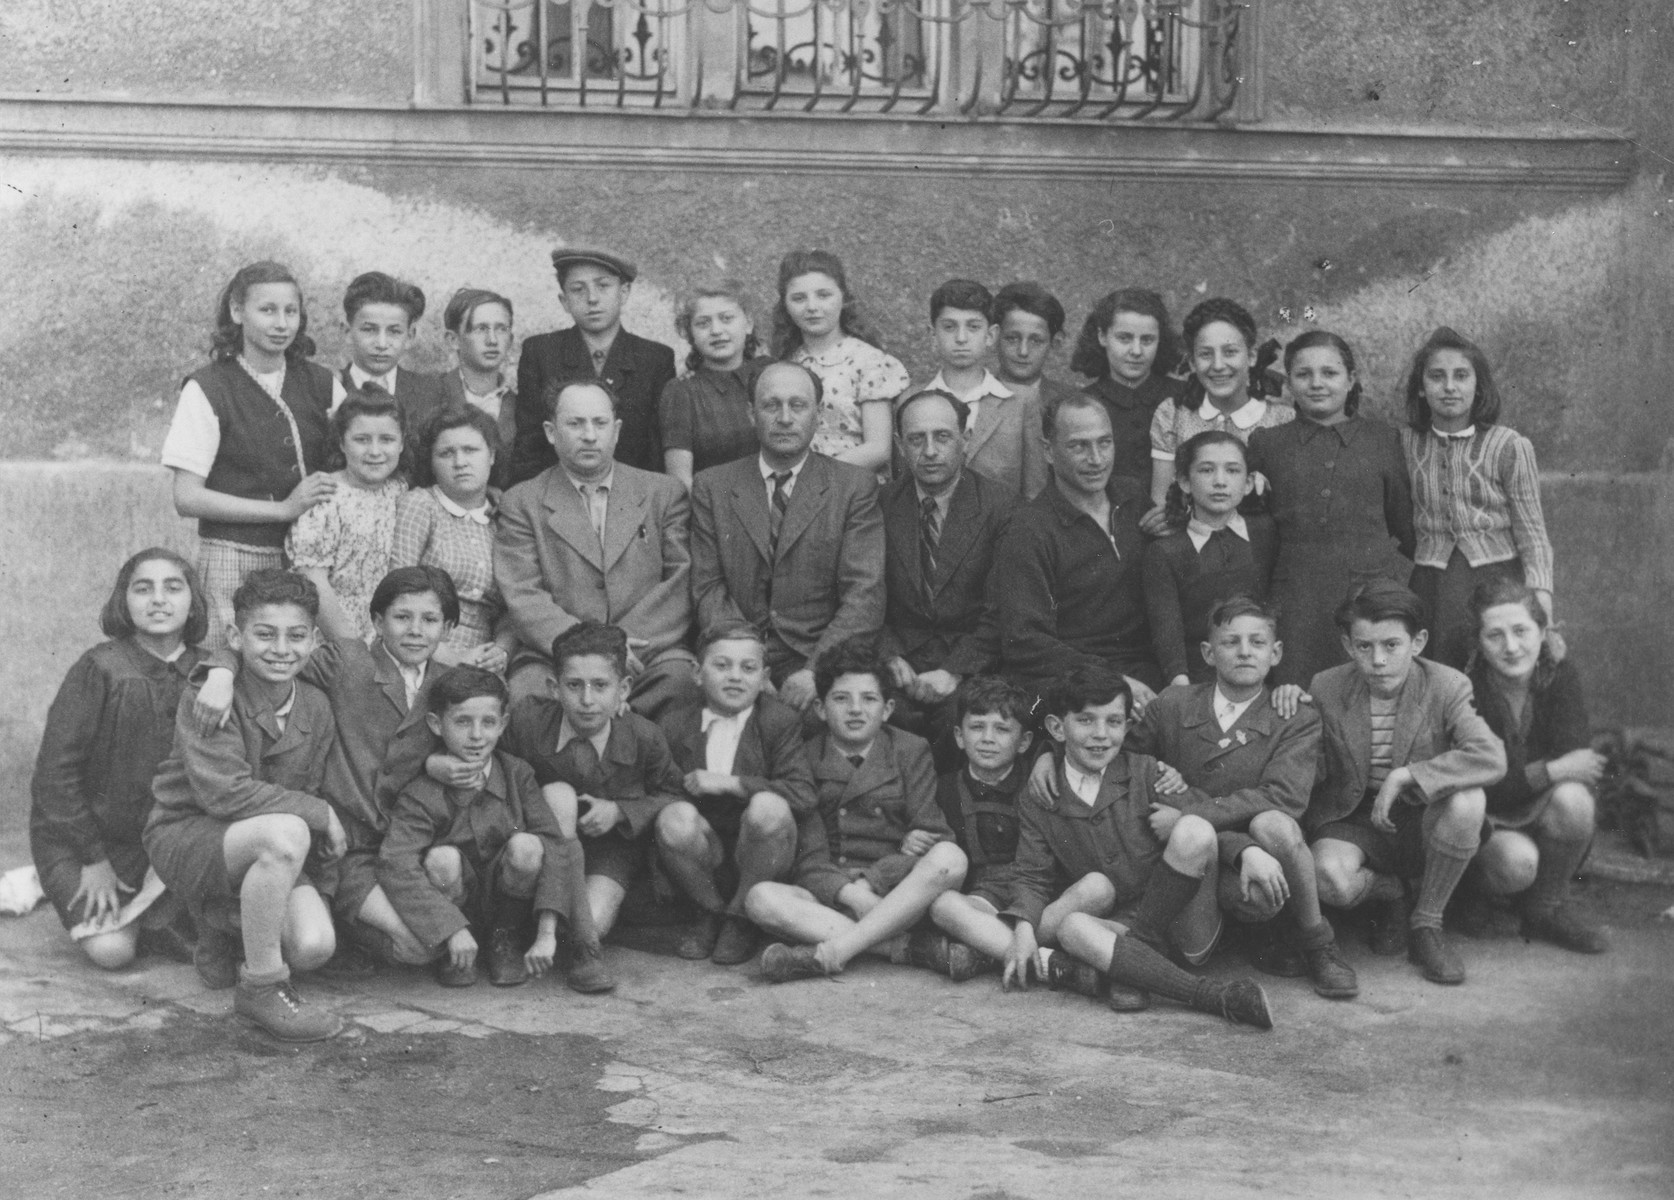 Group portrait of Jewish DP students and teachers at the Moehlstrasse school in Munich.  Among those pictured are Ellen Griliches (back row at the far left); Max Wekselman (back row 3rd from left); (Shloime Rabinowsky (back row, fourth from the left); Rozia (Shoshana) Grossman (back row, sixth from the left); Aron Bankowicz (back row, seventh from the left); Bronia Zwass (back row, first from the right); Gunia Herring (third row, first on the left); Dina Friedman (front row, first on the right).